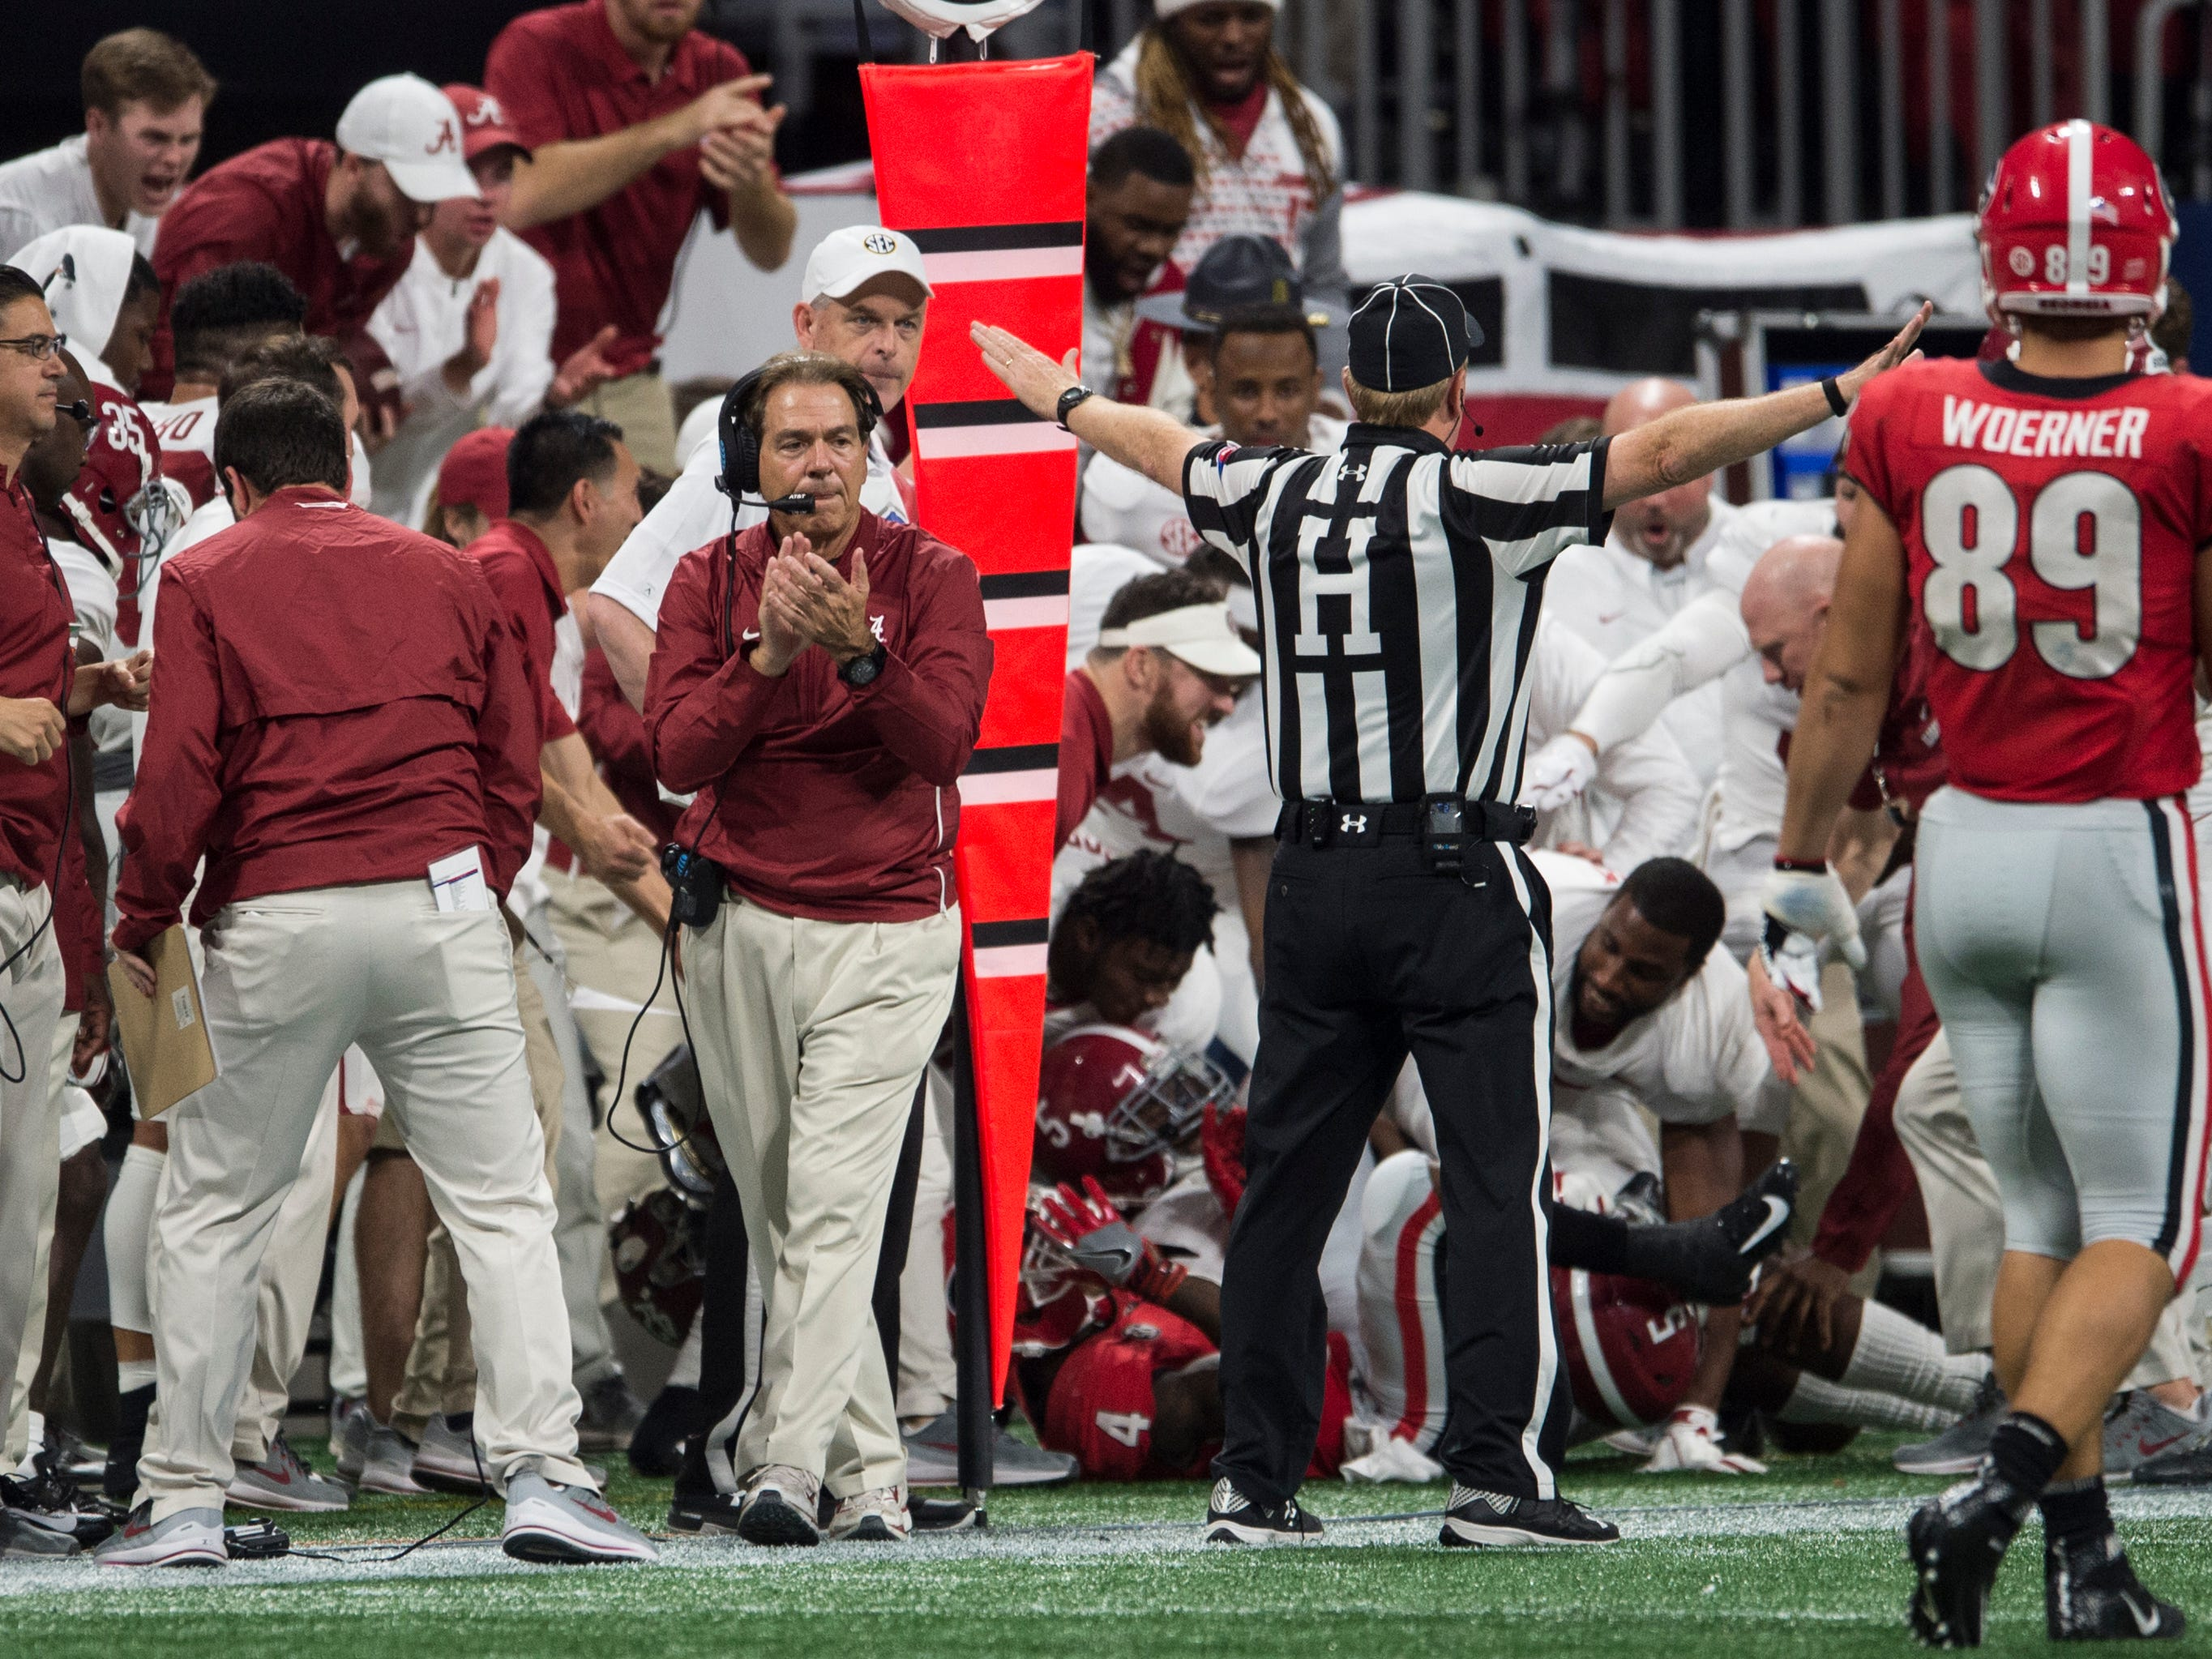 Alabama head coach Nick Saban cheers on his team form the sideline during the SEC Championship game at Mercedes-Benz Stadium in Atlanta, Ga., on Saturday Dec. 1, 2018. Alabama defeated Georgia 35-28.